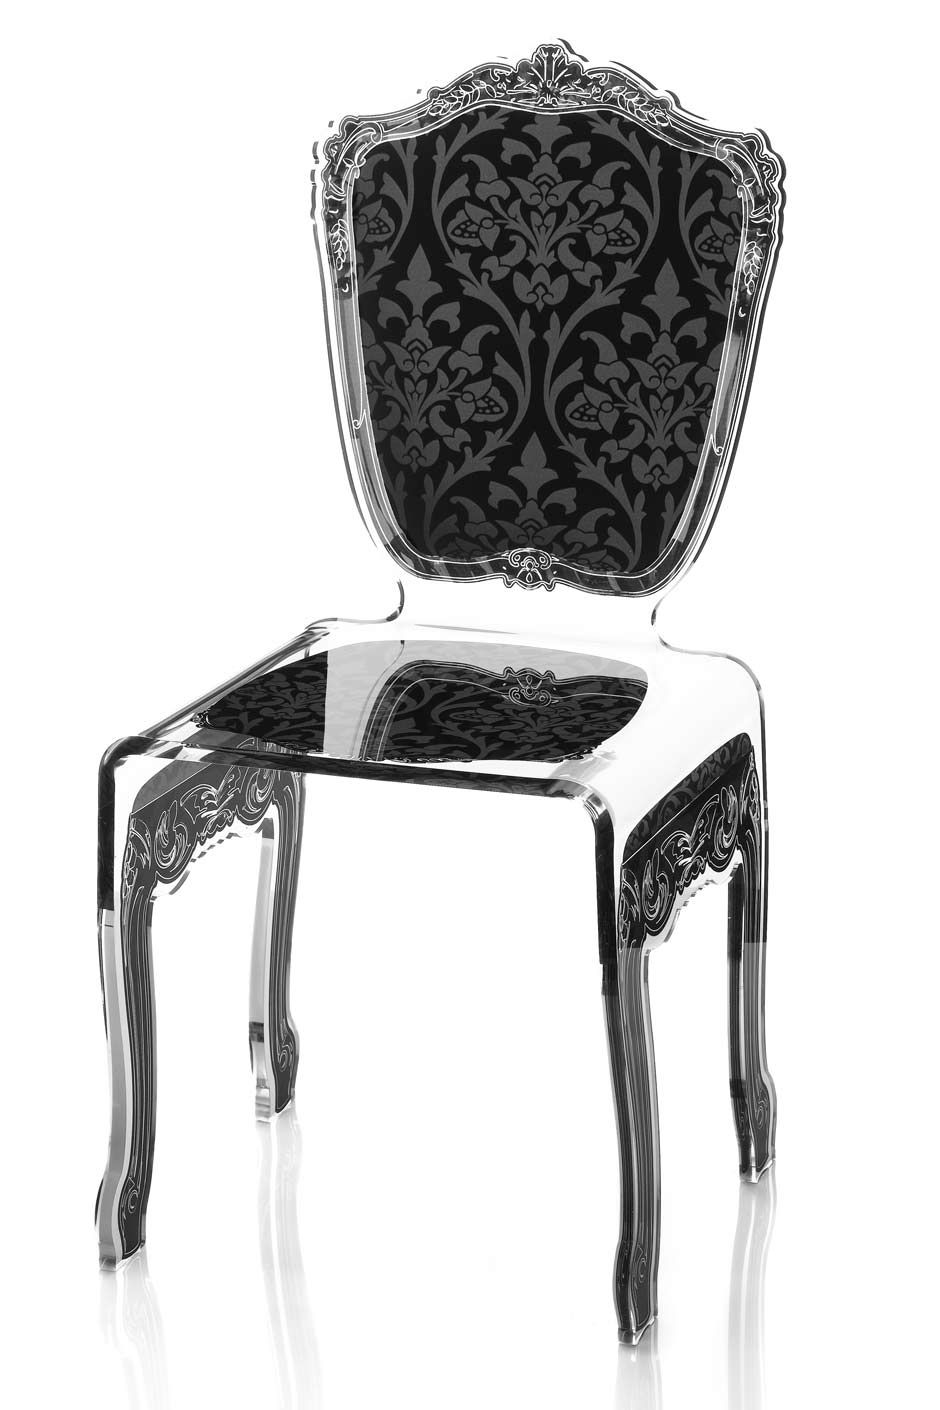 Chaise plexiglas transparent baroque motif noir - Chaise baroque transparente ...